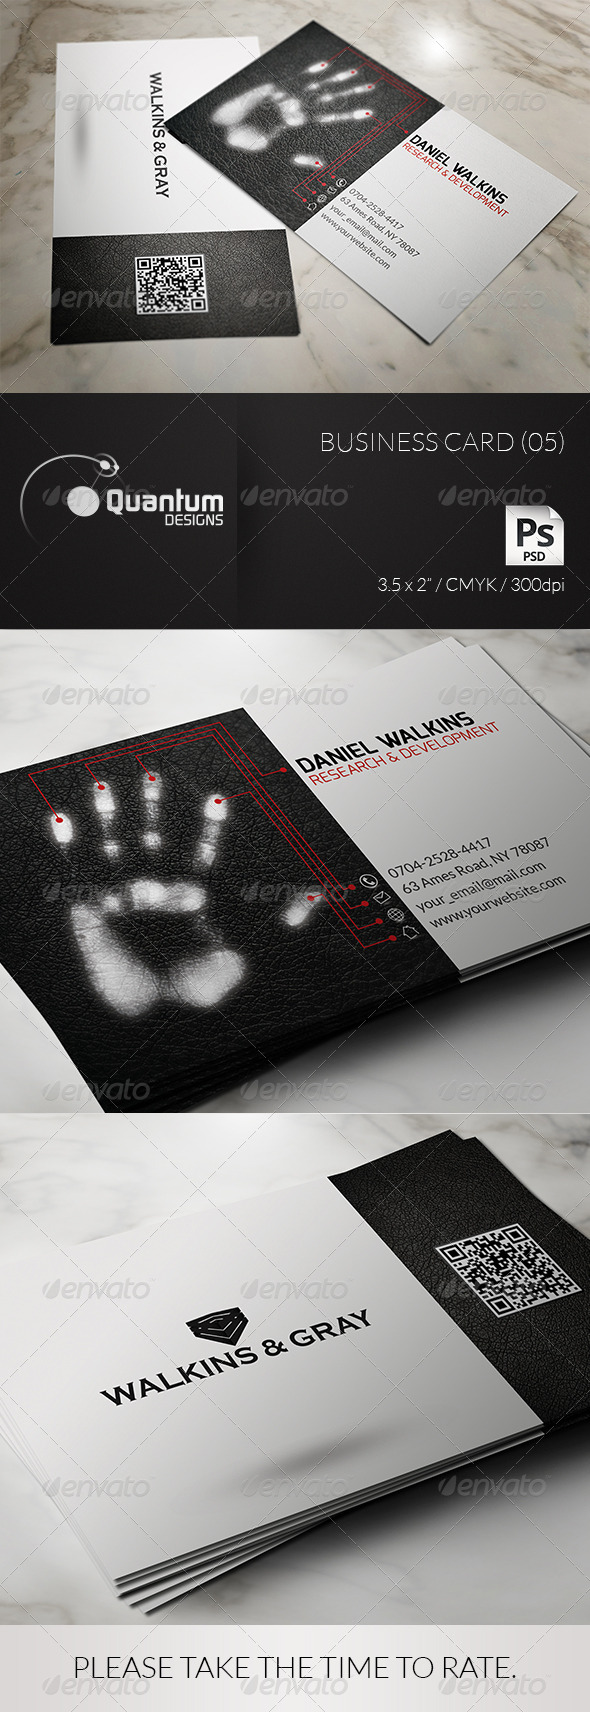 GraphicRiver Business Card 05 6203350